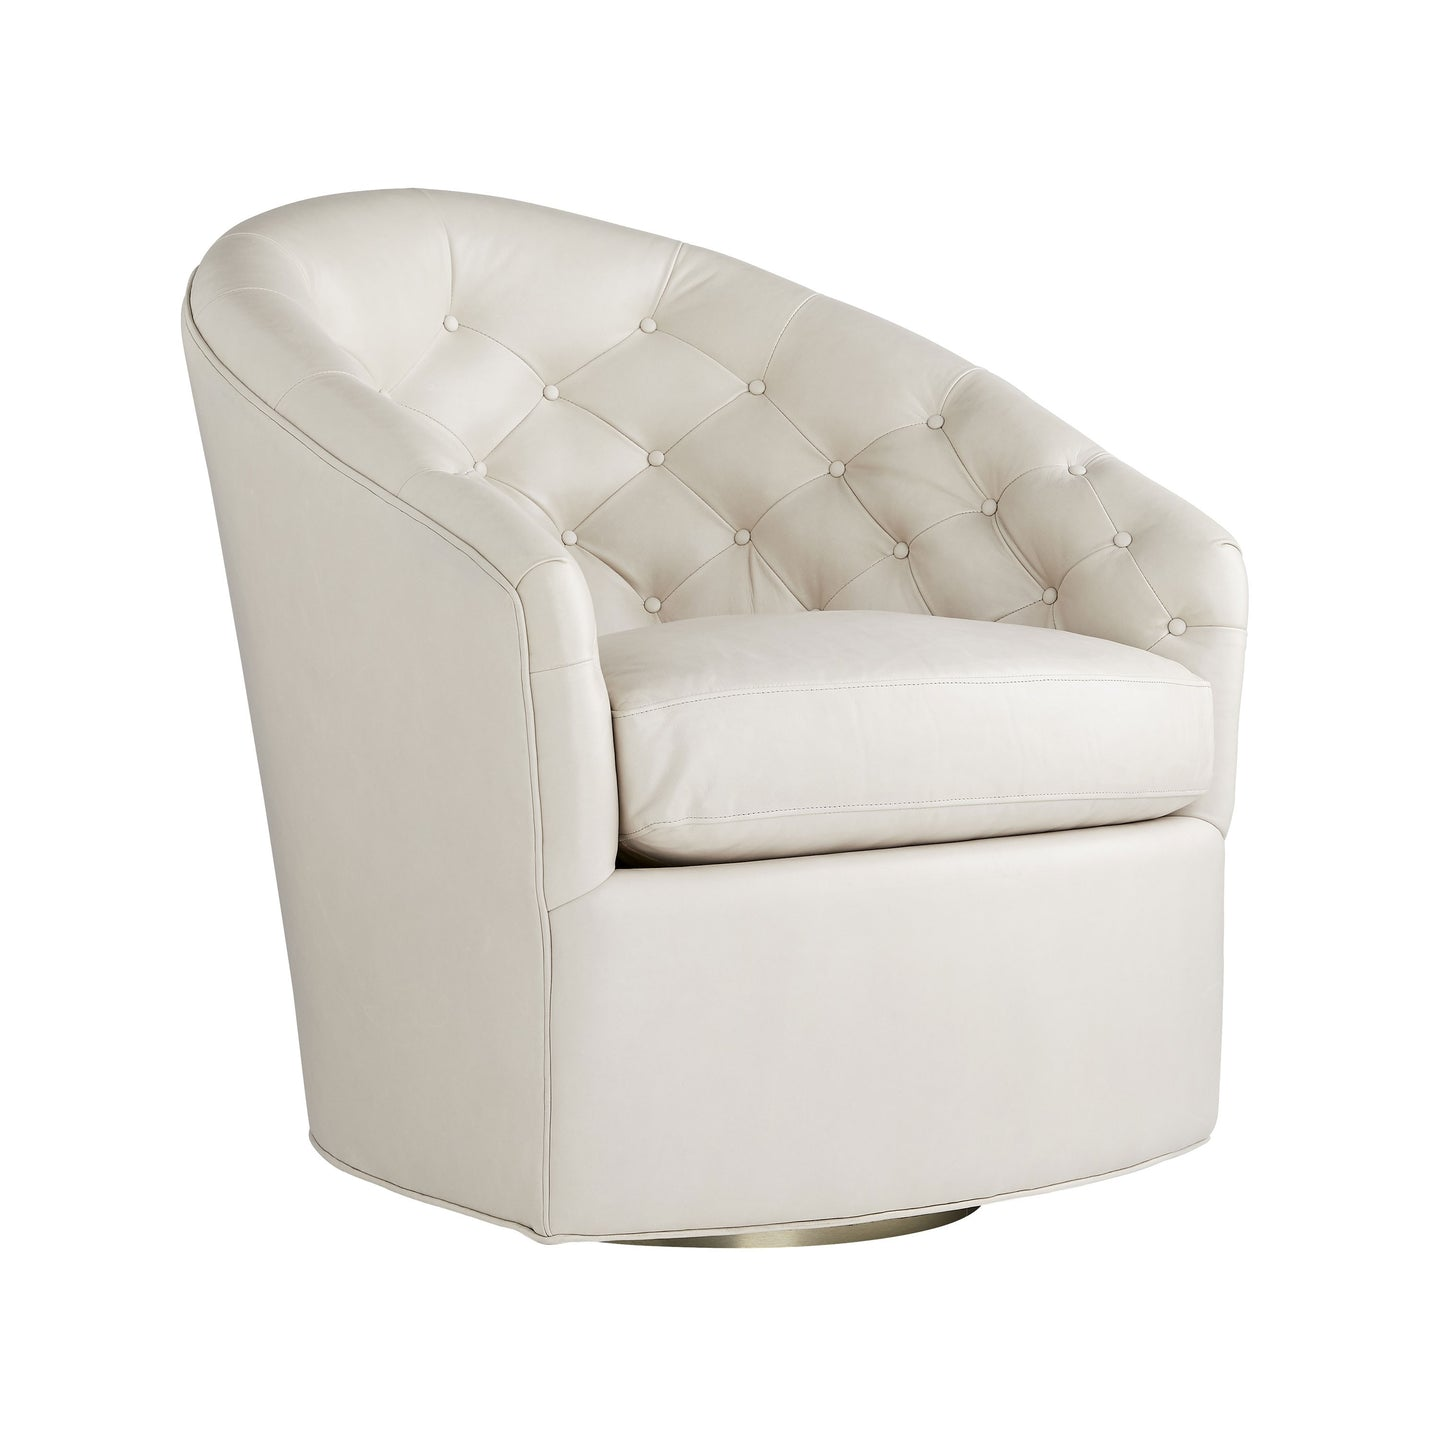 Capri Chair Flint Leather